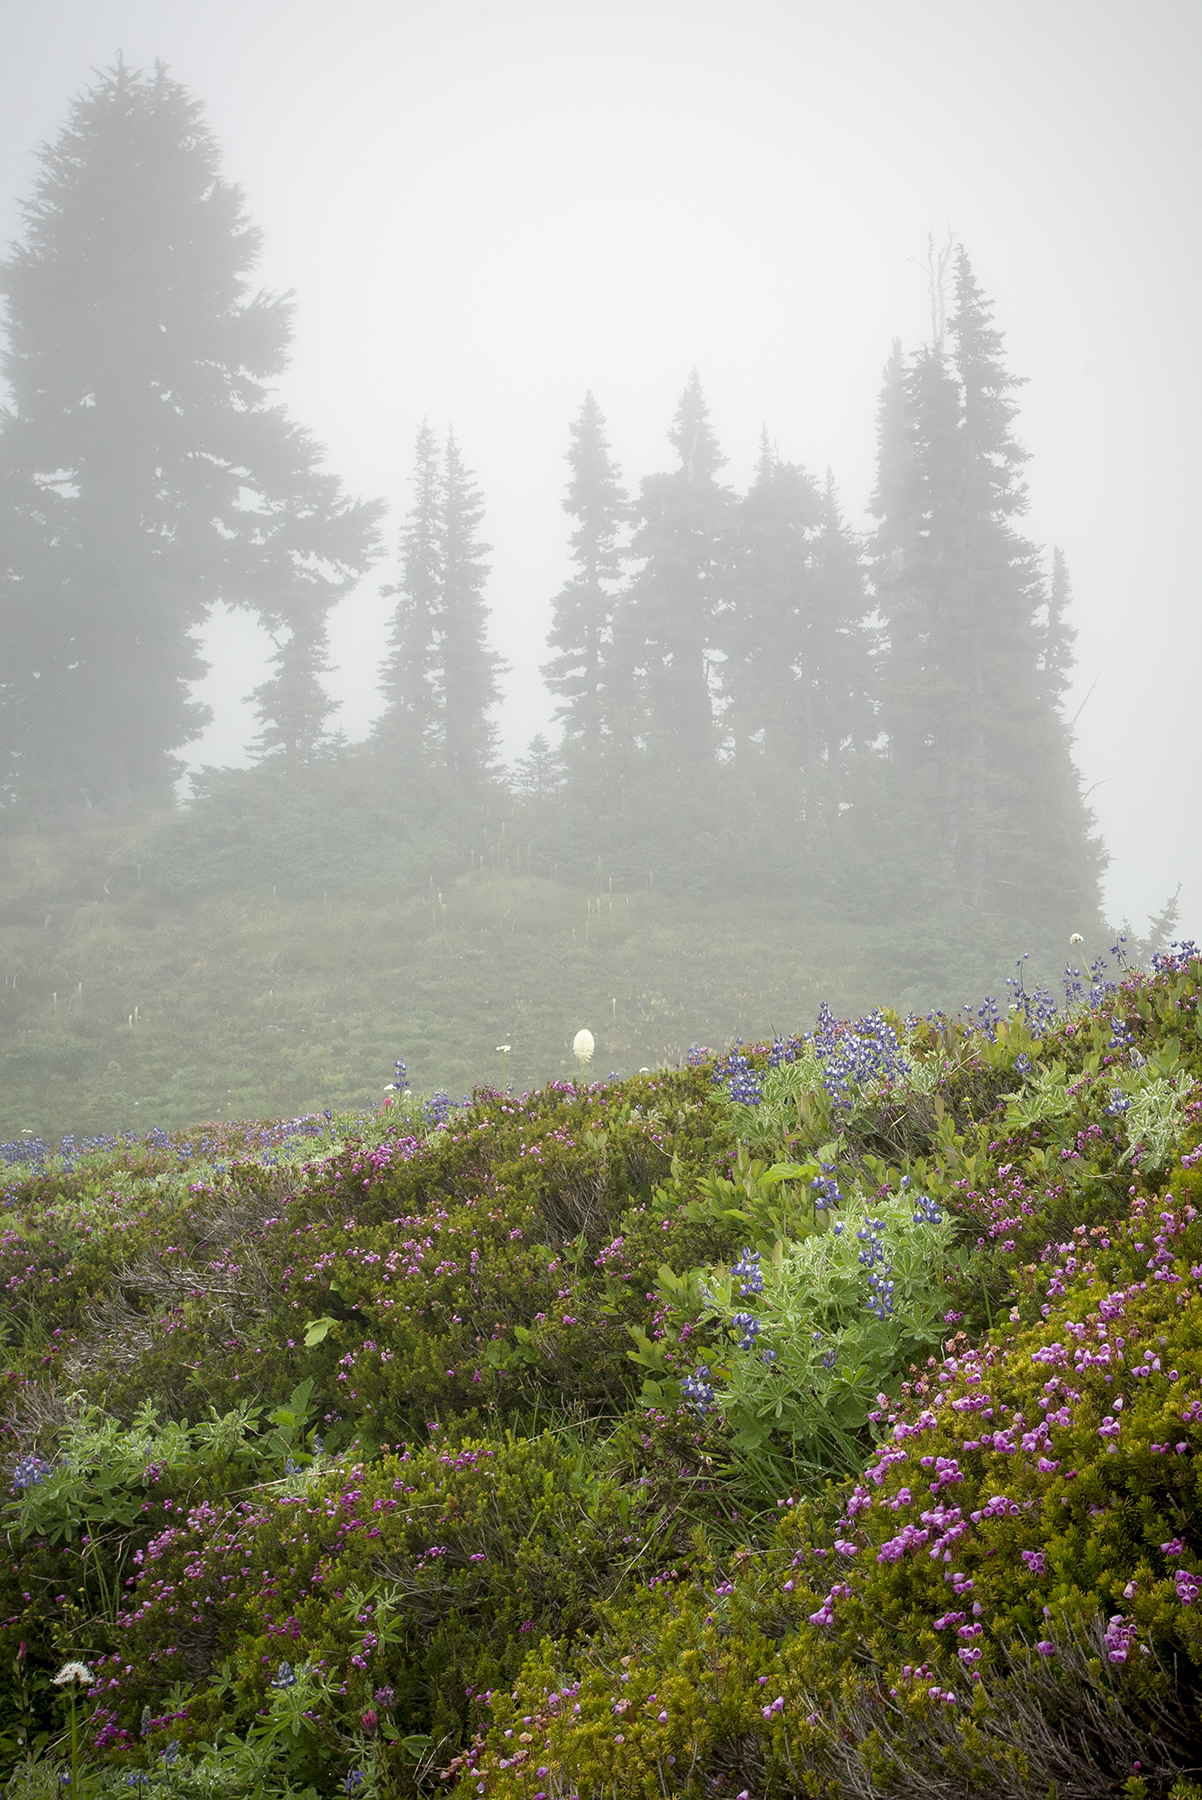 Paradise – even in the fog!